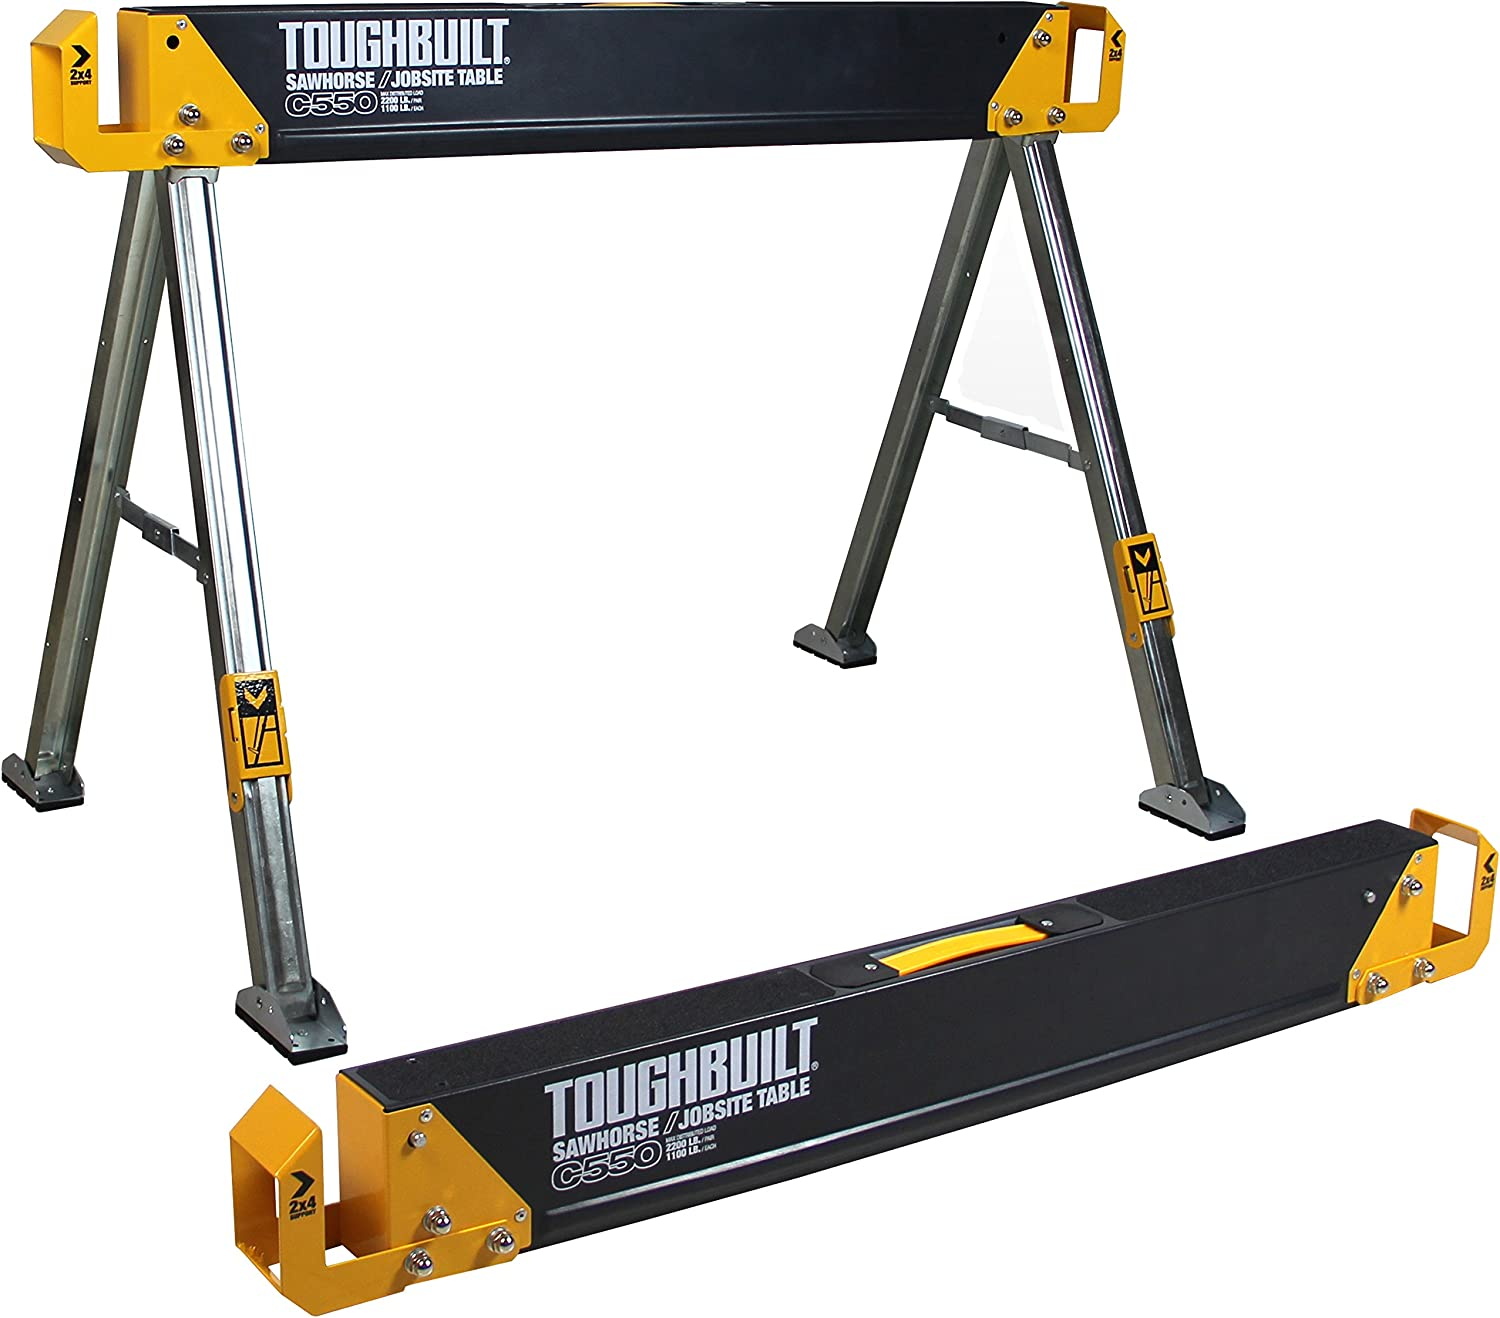 Toughbuilt TOU-C550 Scie Cheval Chantier Chevalet Table